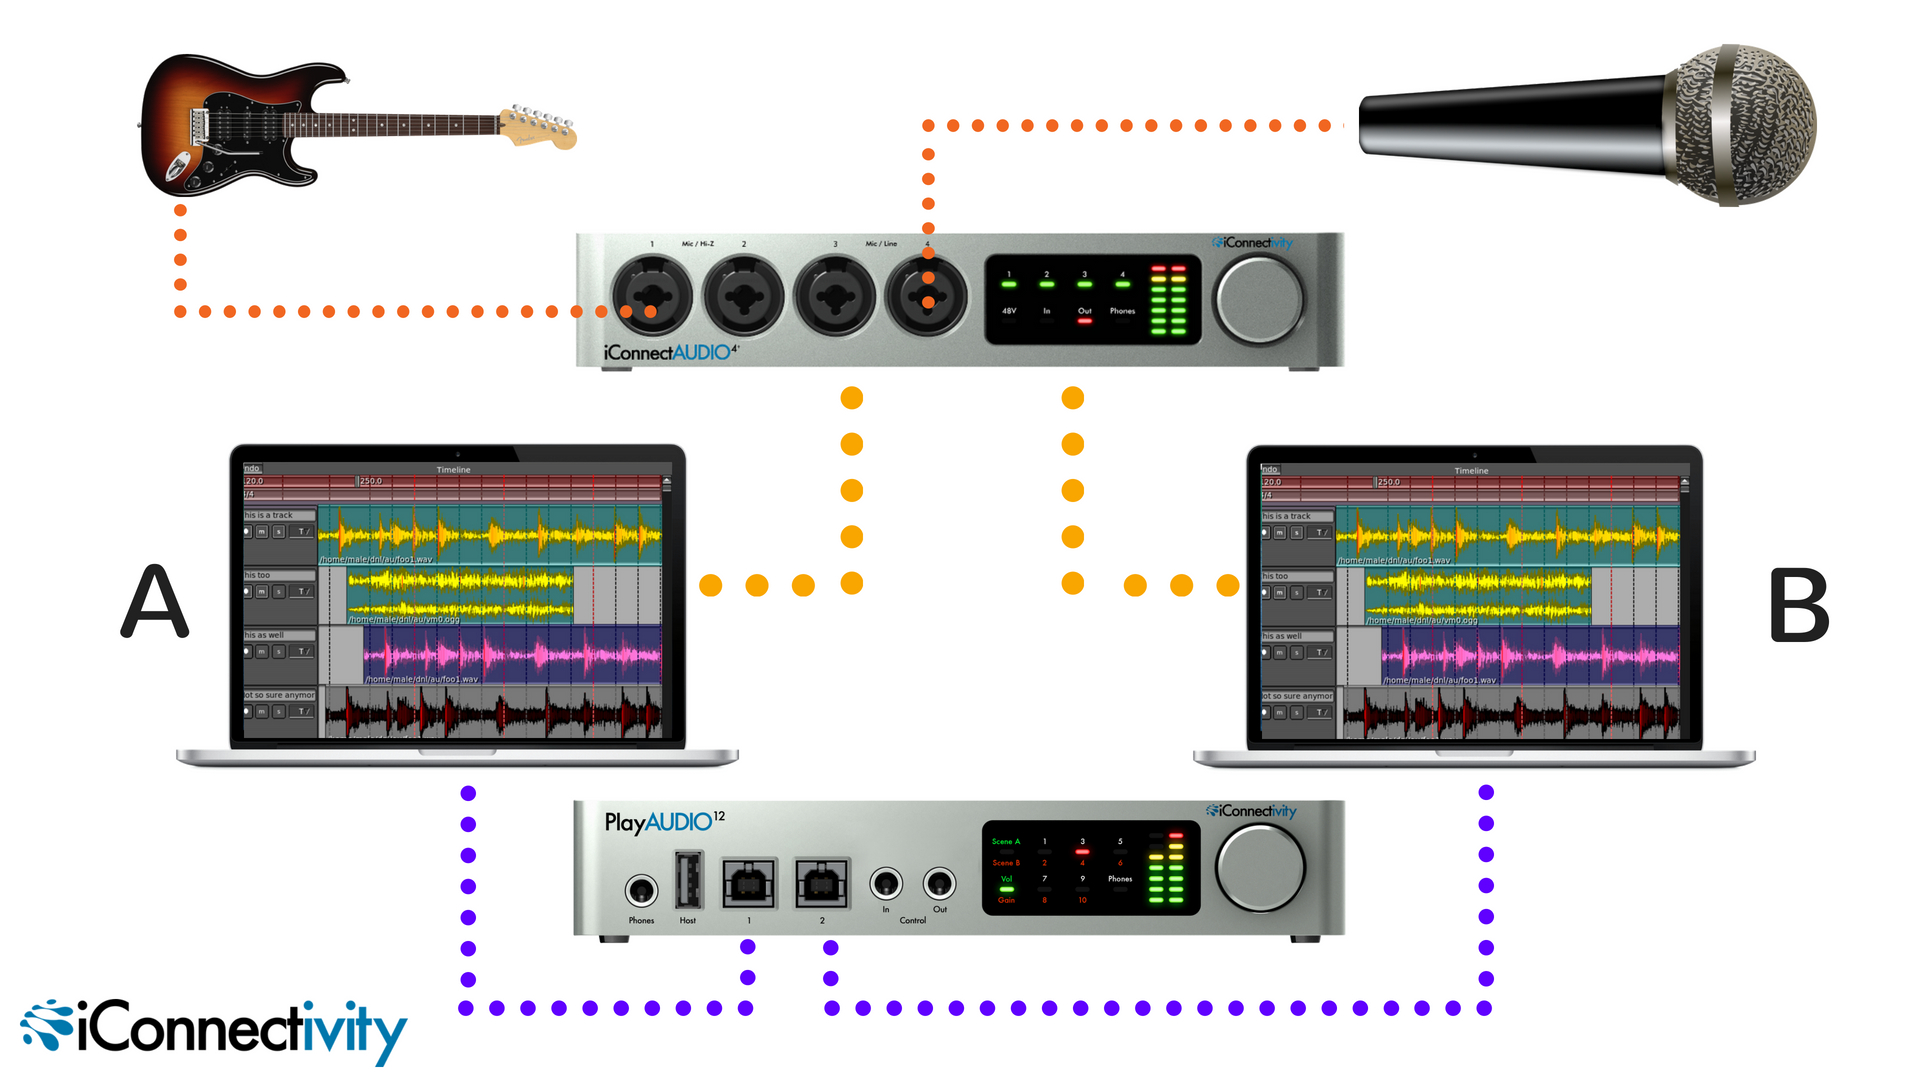 Adding redundant inputs is simple and easy with the iConnectAUDIO4+ Dark orange lines show the inputs (in this case a guitar and a microphone). Use iConnectivity's control software to route your inputs to both computer connections, shown here as the lighter orange lines. Your PlayAUDIO12 then connects in the normal manner (purple lines), just be sure to set your DAW's inputs on both machines to accept the outputs from the iConnectAUDIO4+